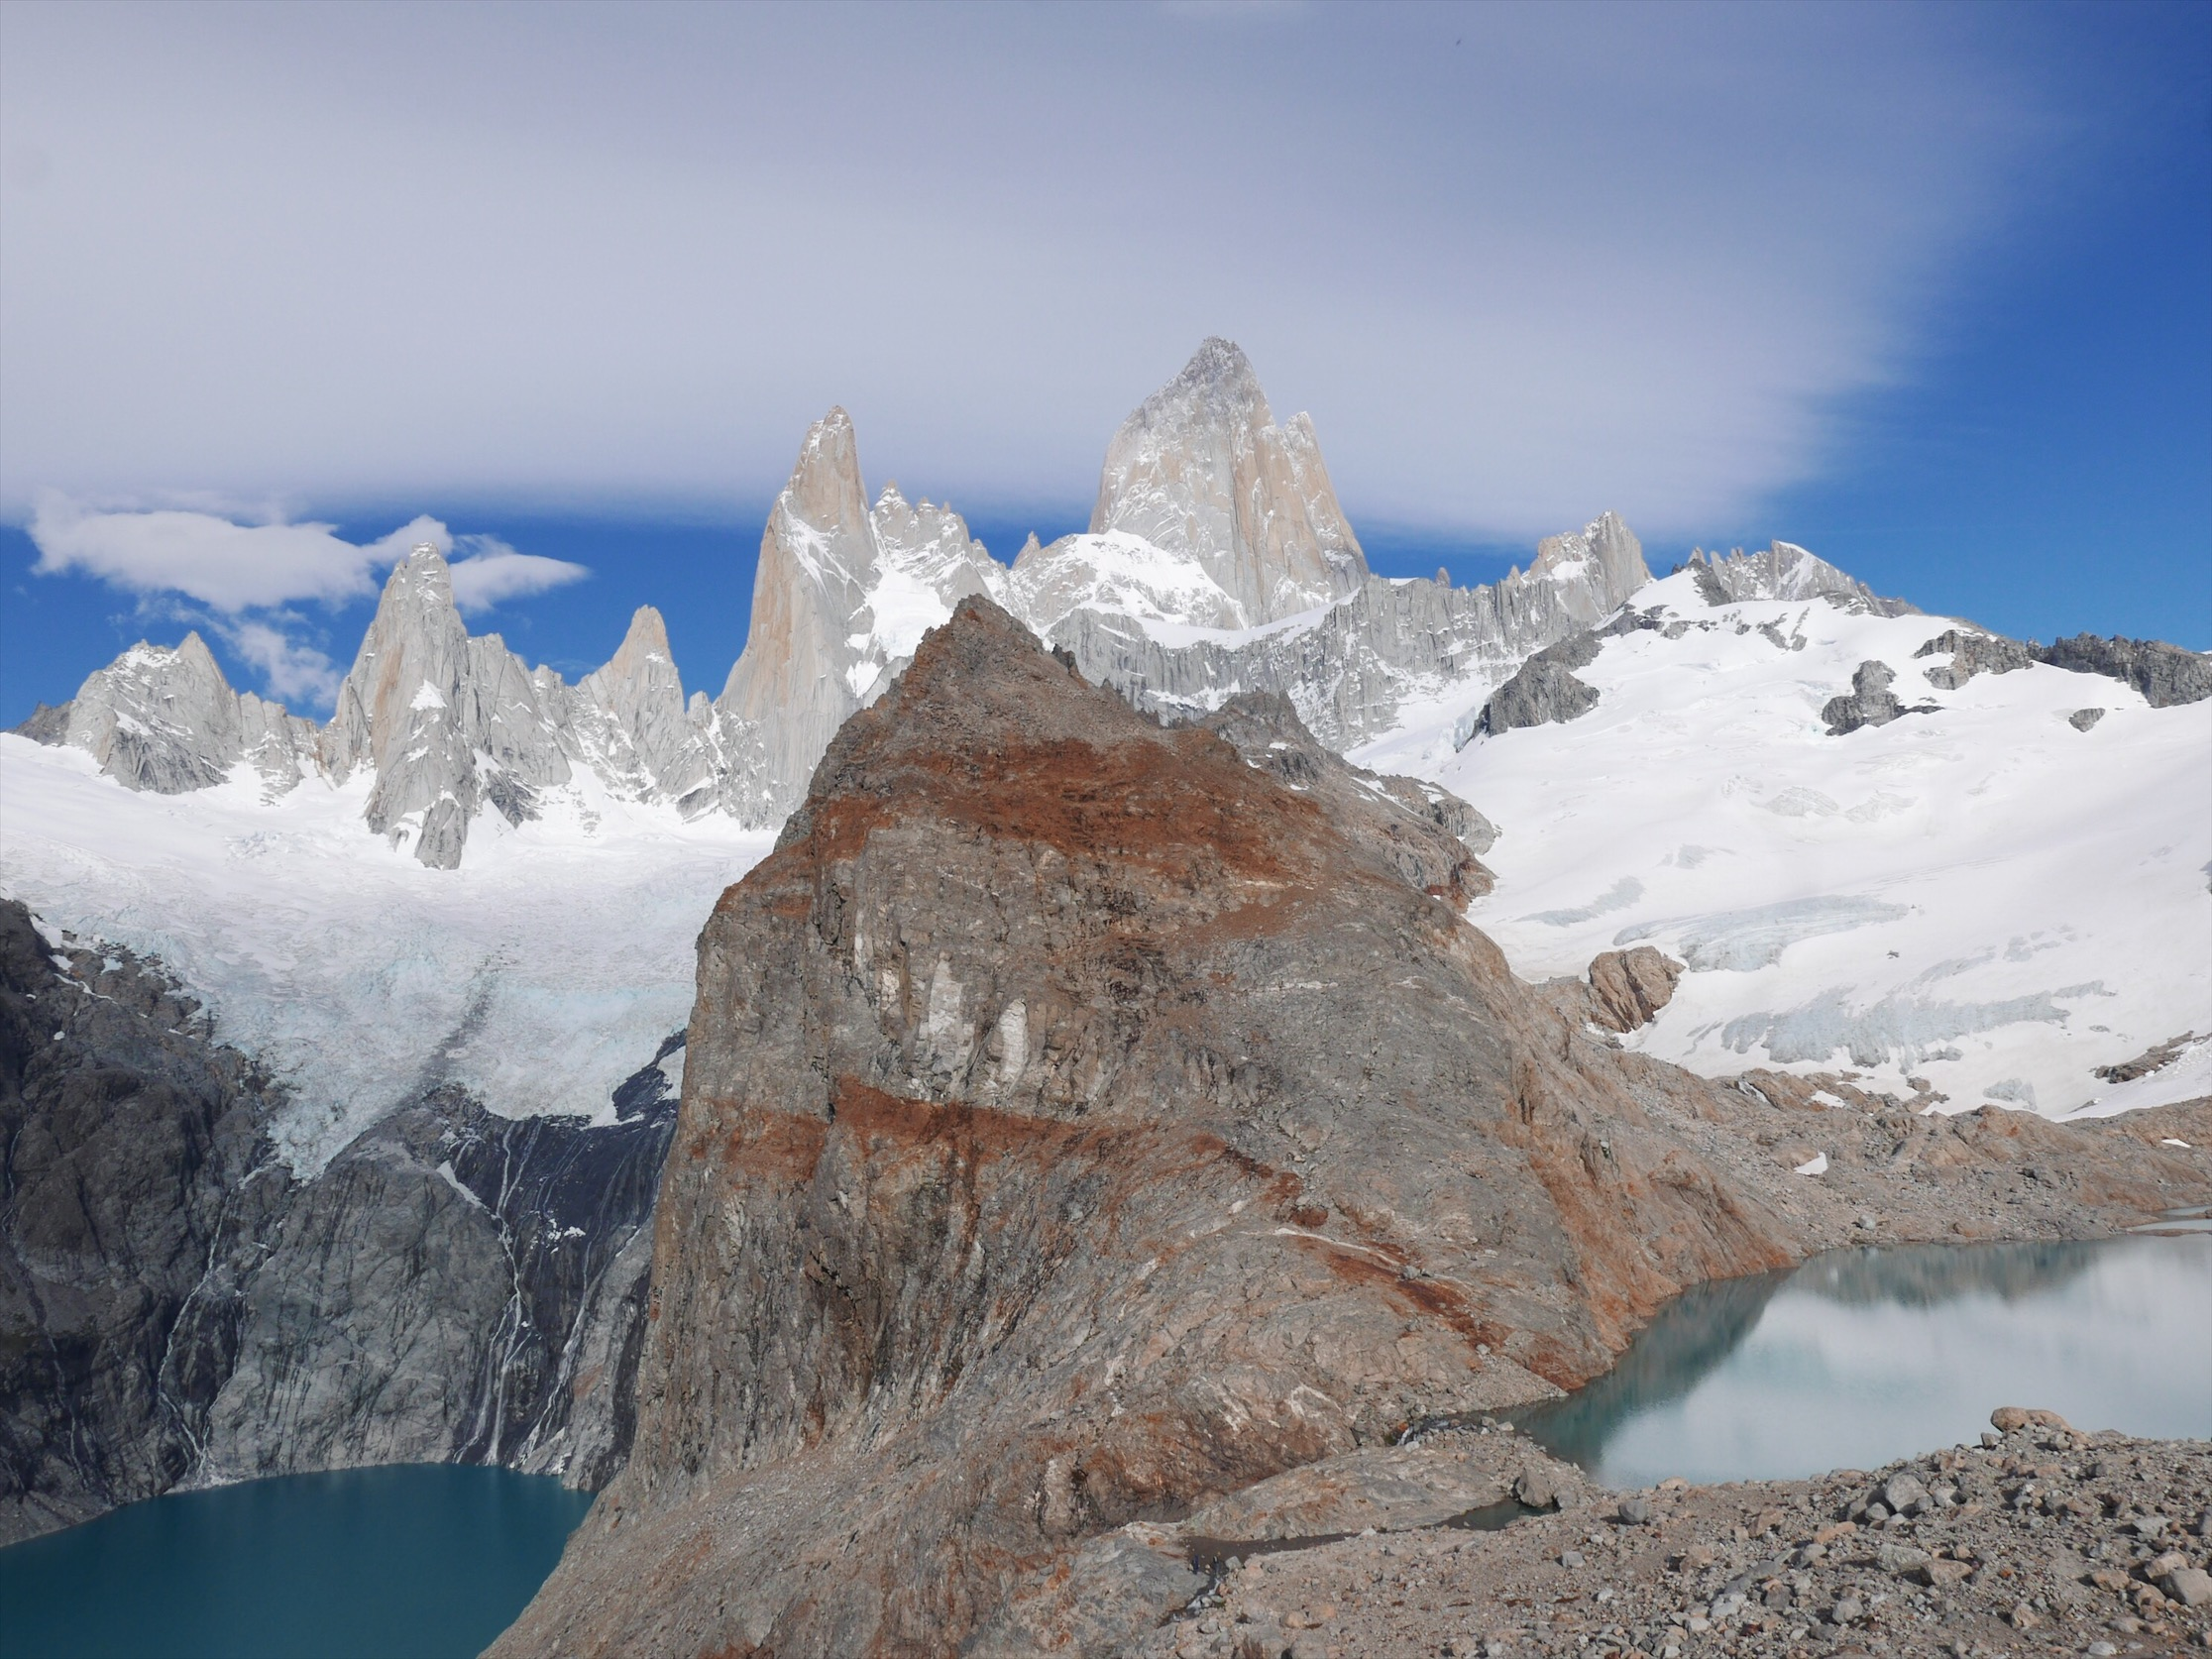 Neighboring lagunas foreground for the seven peaks comprising the Fitz Roy skyline. Fitz's 5,000-foot granite fin is an impressive sight to behold. We later watched the film  A Line Across the Sky  documenting climbers Tommy Caldwell and Alex Honnold's quest to traverse all seven peaks in a single expedition—a feat that only seems more absurd having sat underneath them.